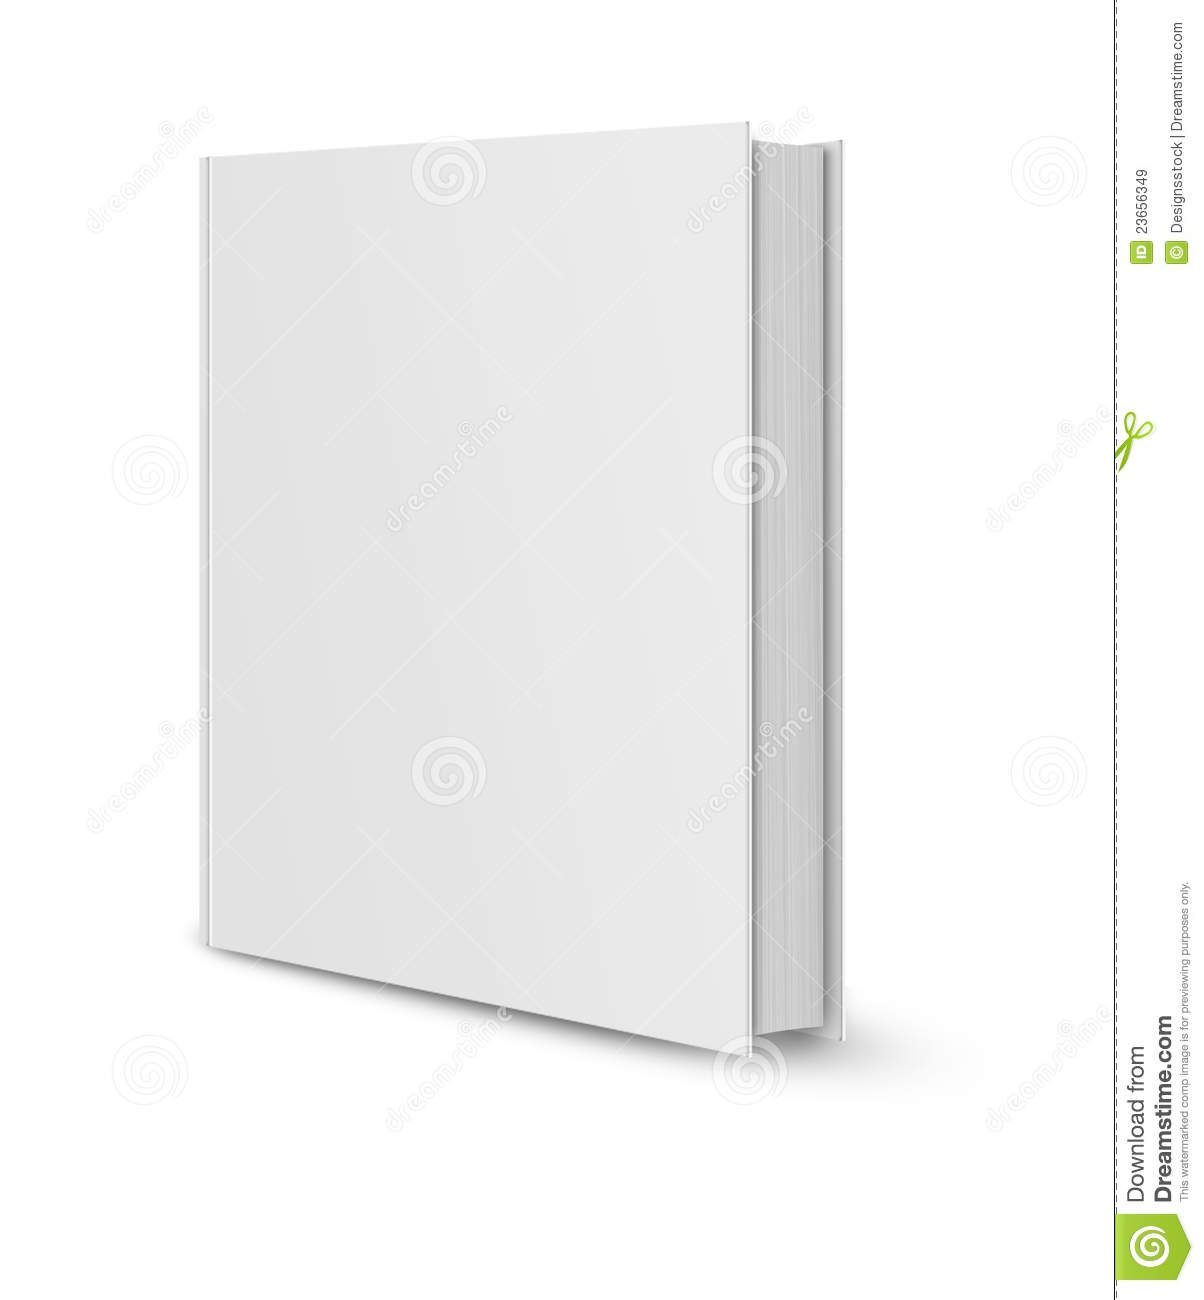 Blank book cover white